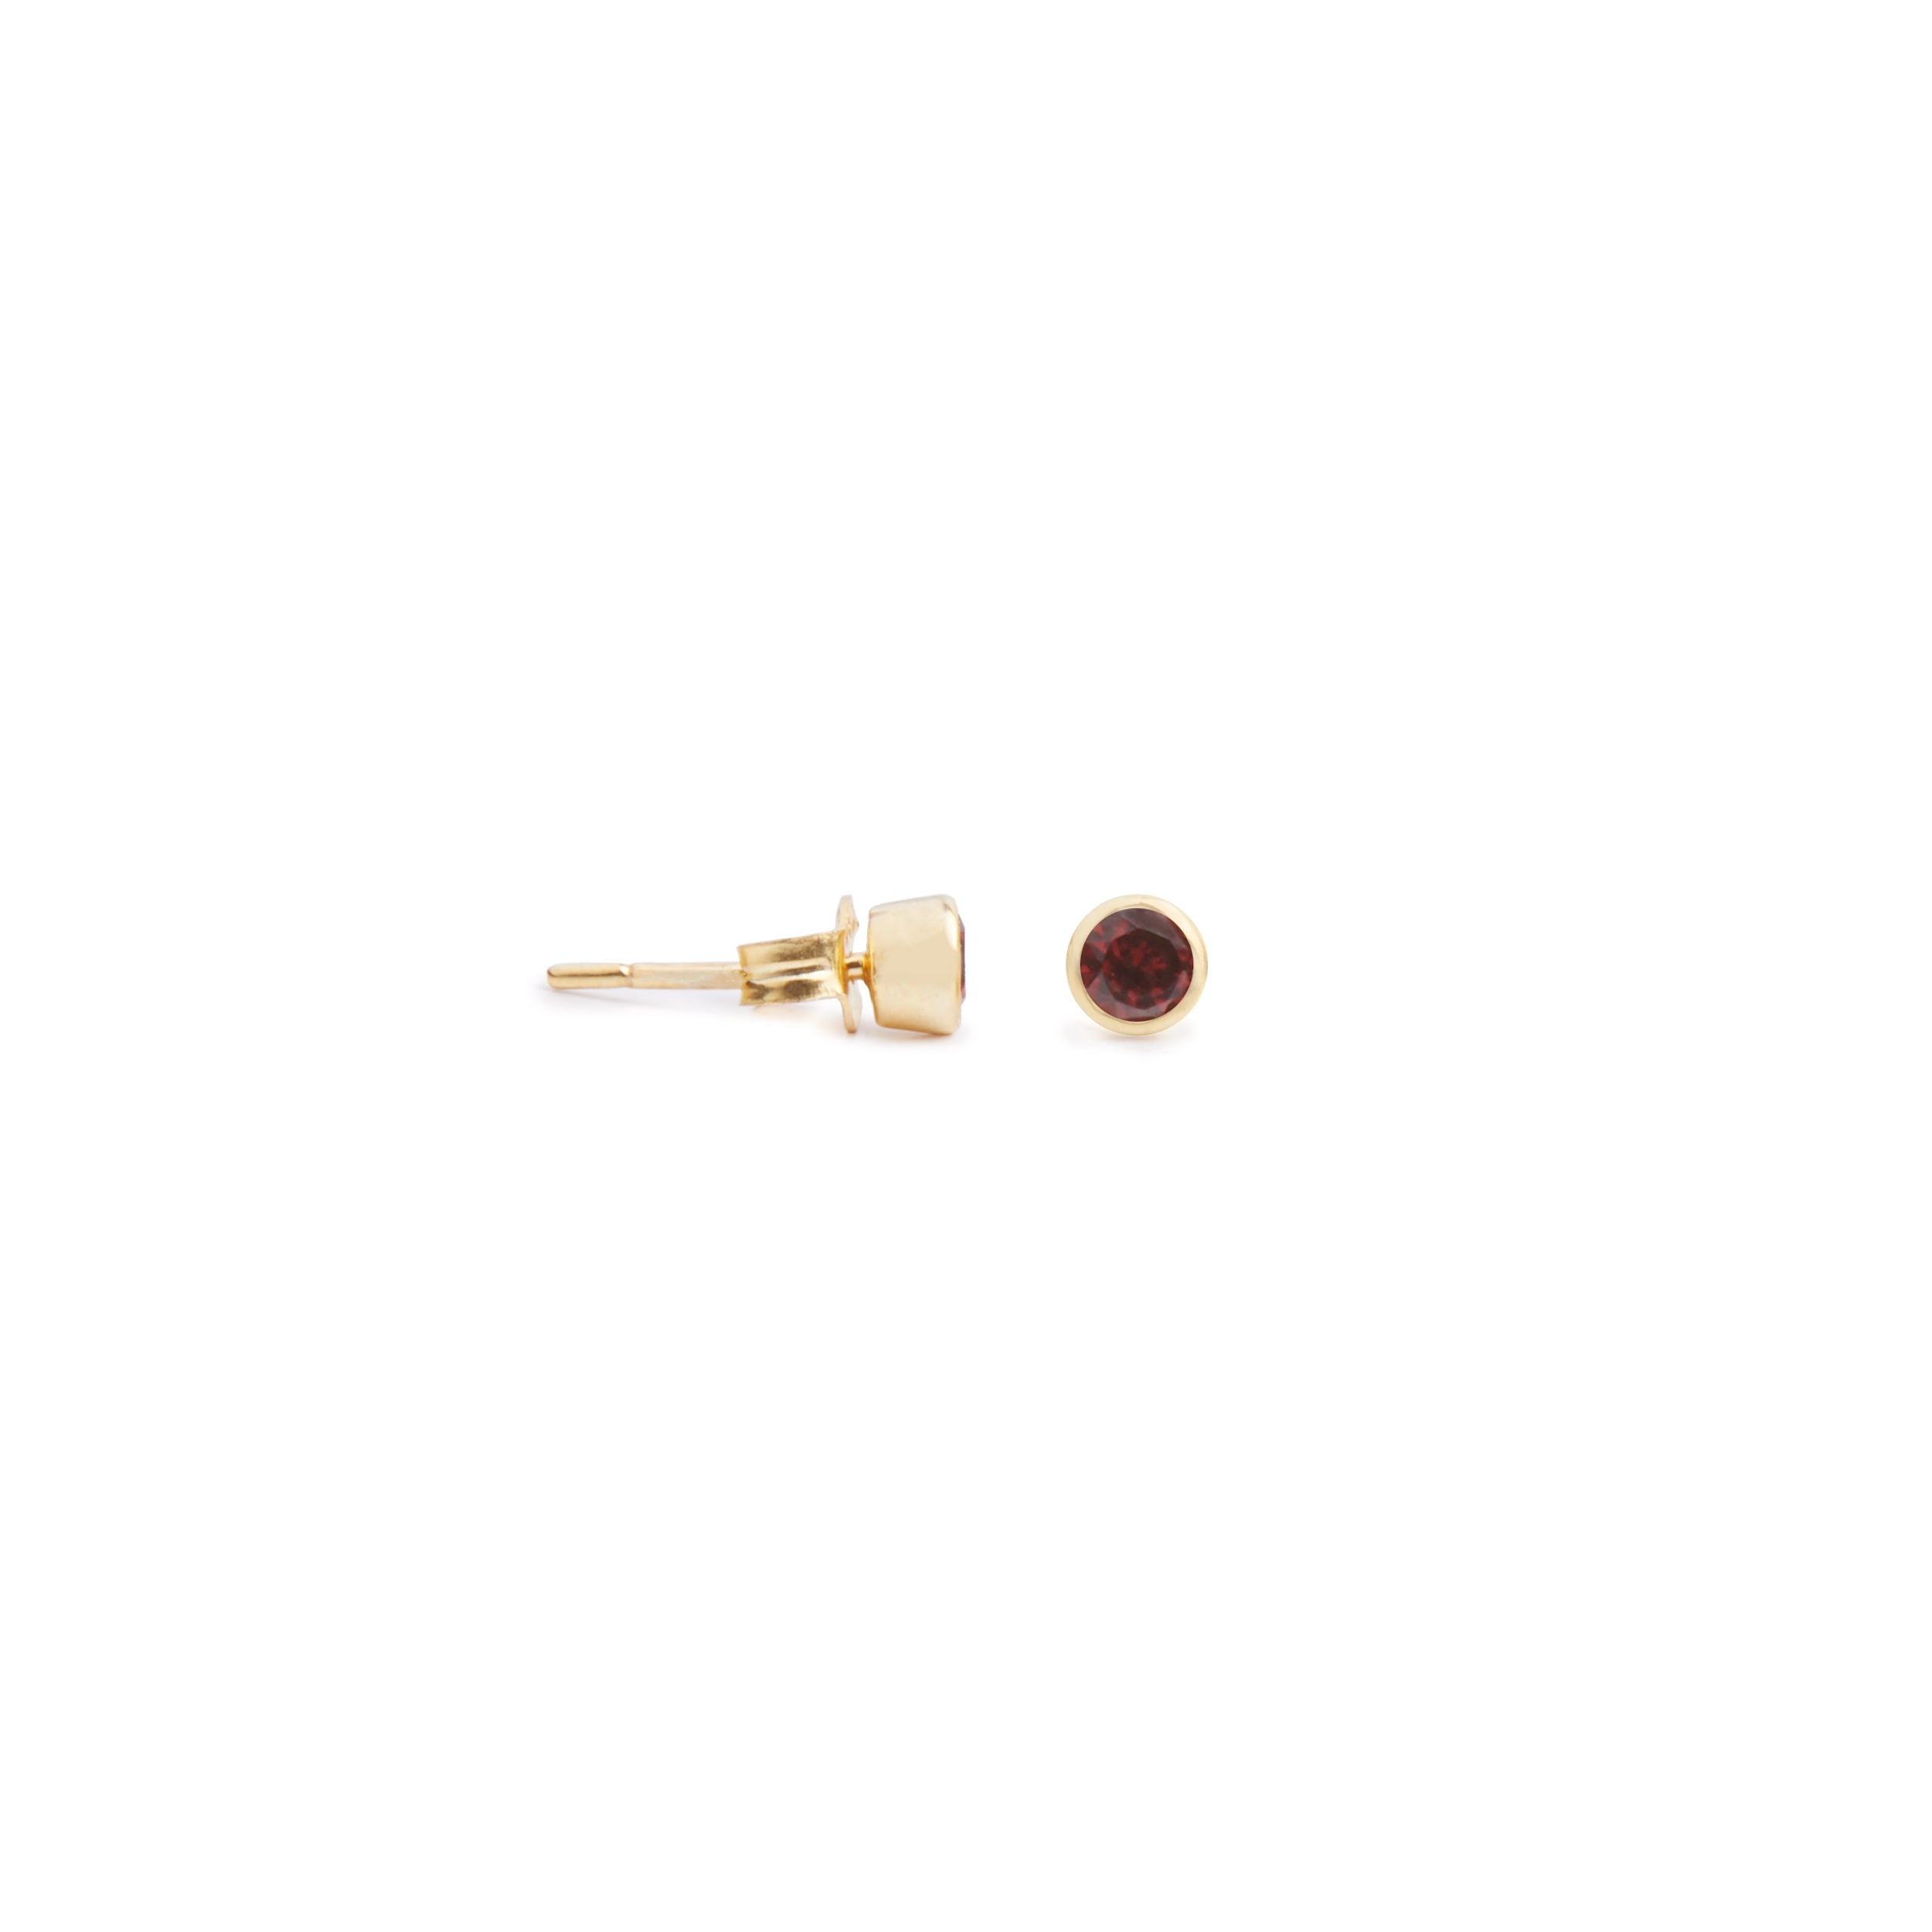 Acer Ear Stud in Gold with Garnet